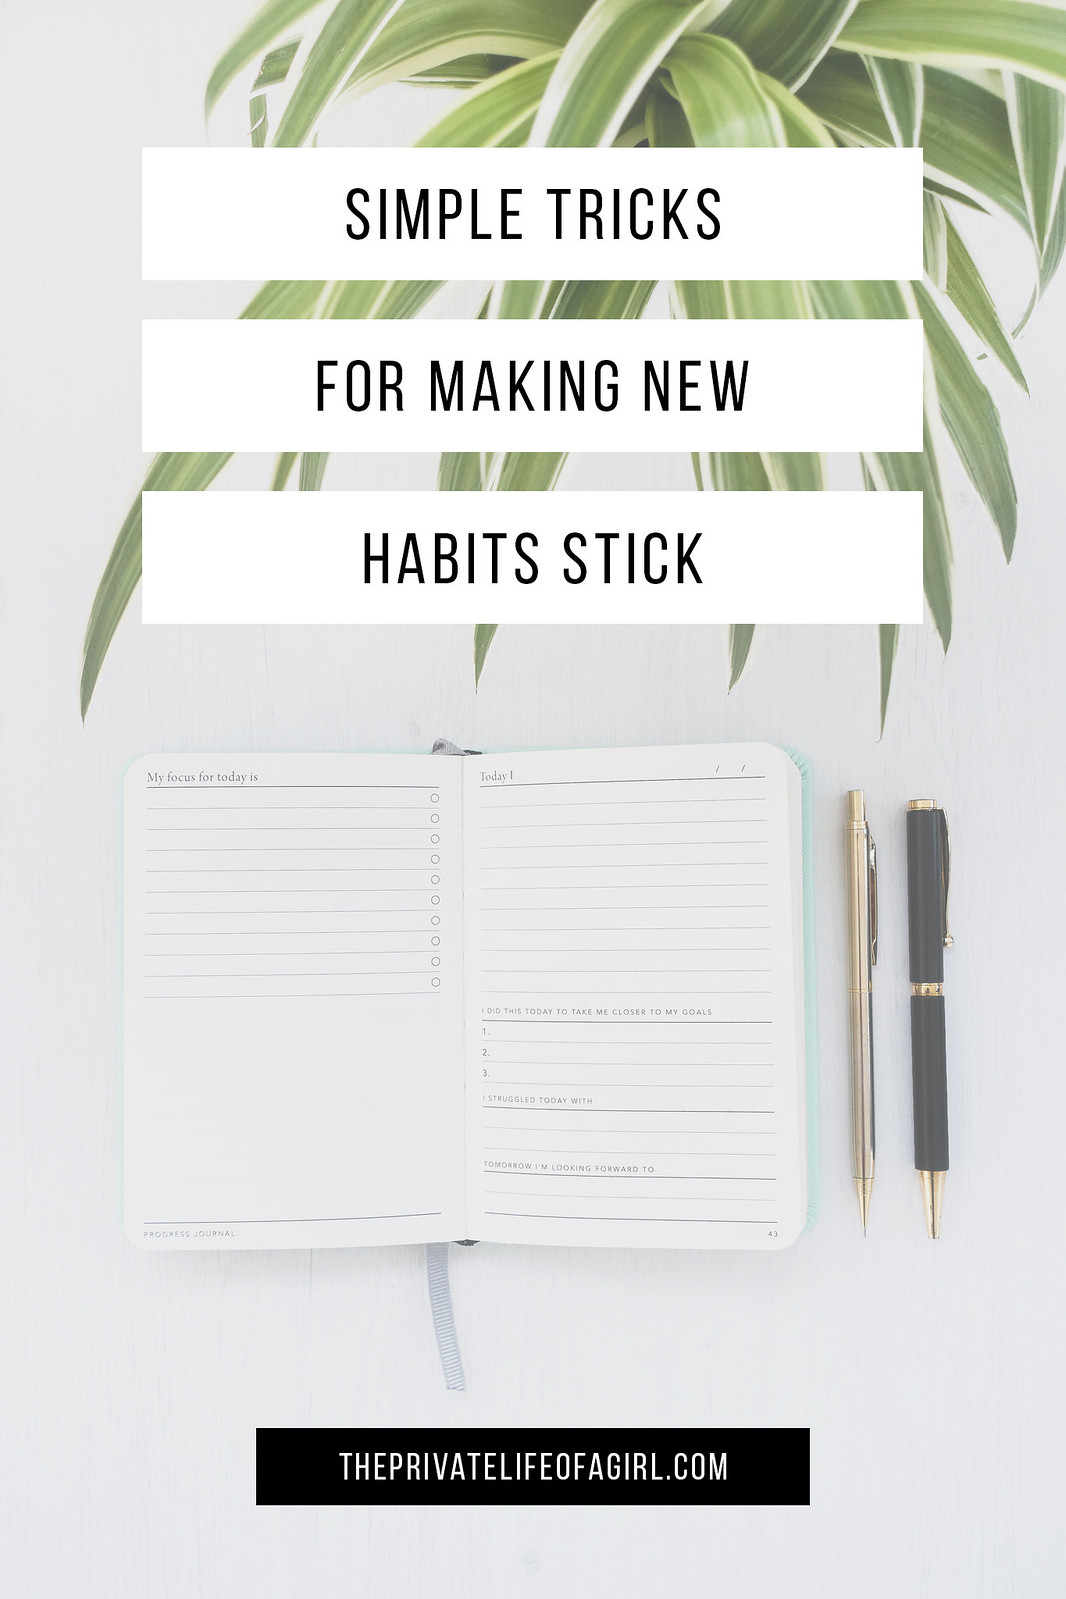 Simple Tricks To Make New Habits Stick